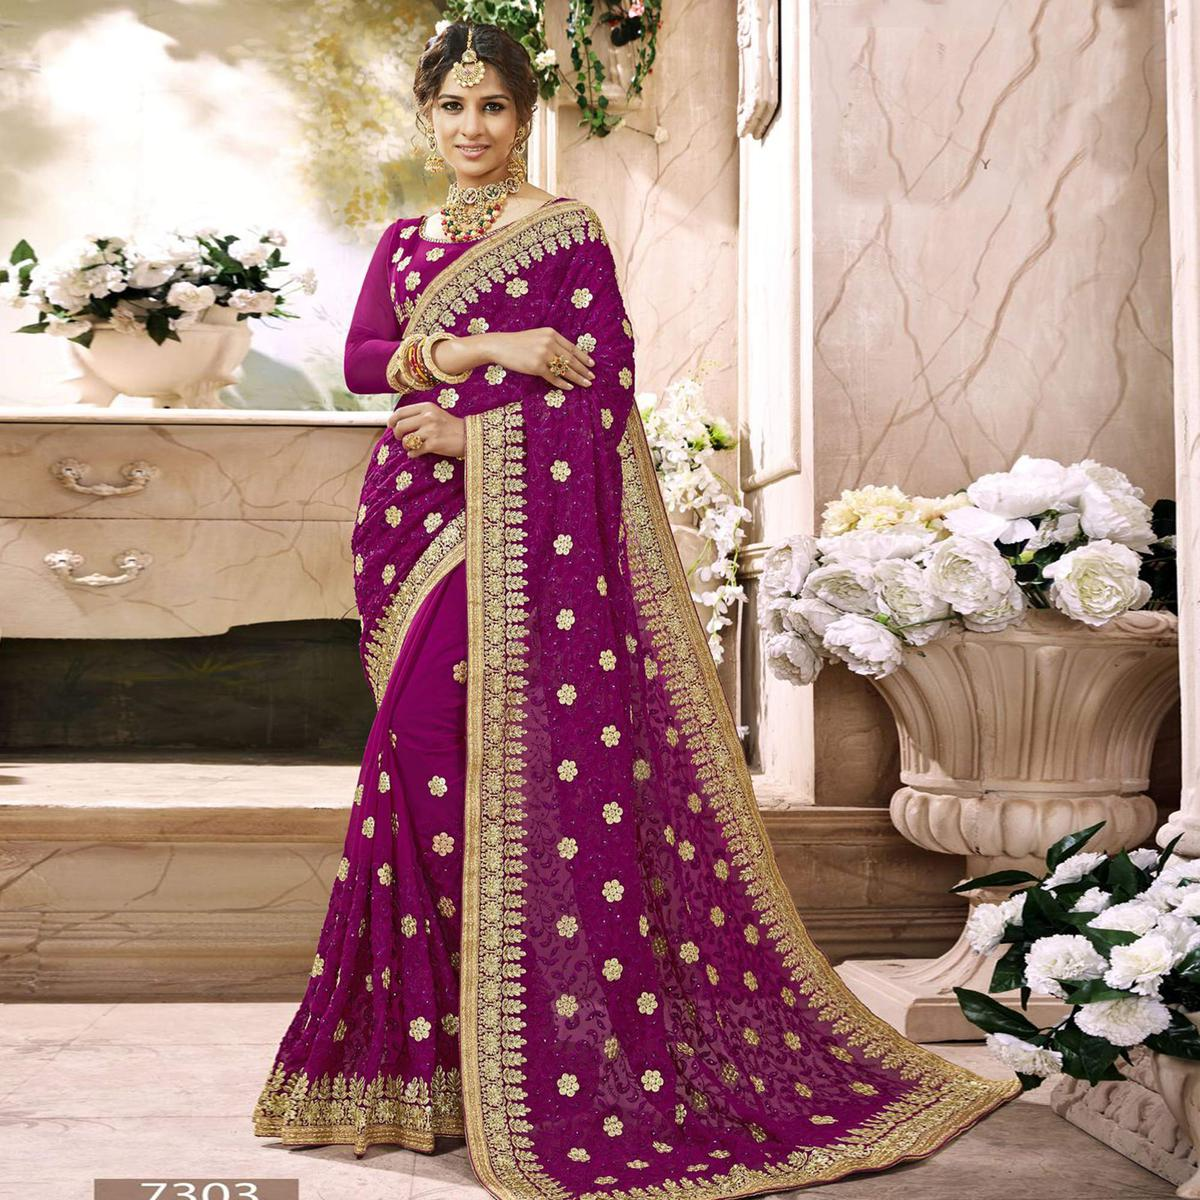 255c920a3 Buy Attractive Purple Colored Partywear Embroidered Faux Georgette Saree  for women s online India